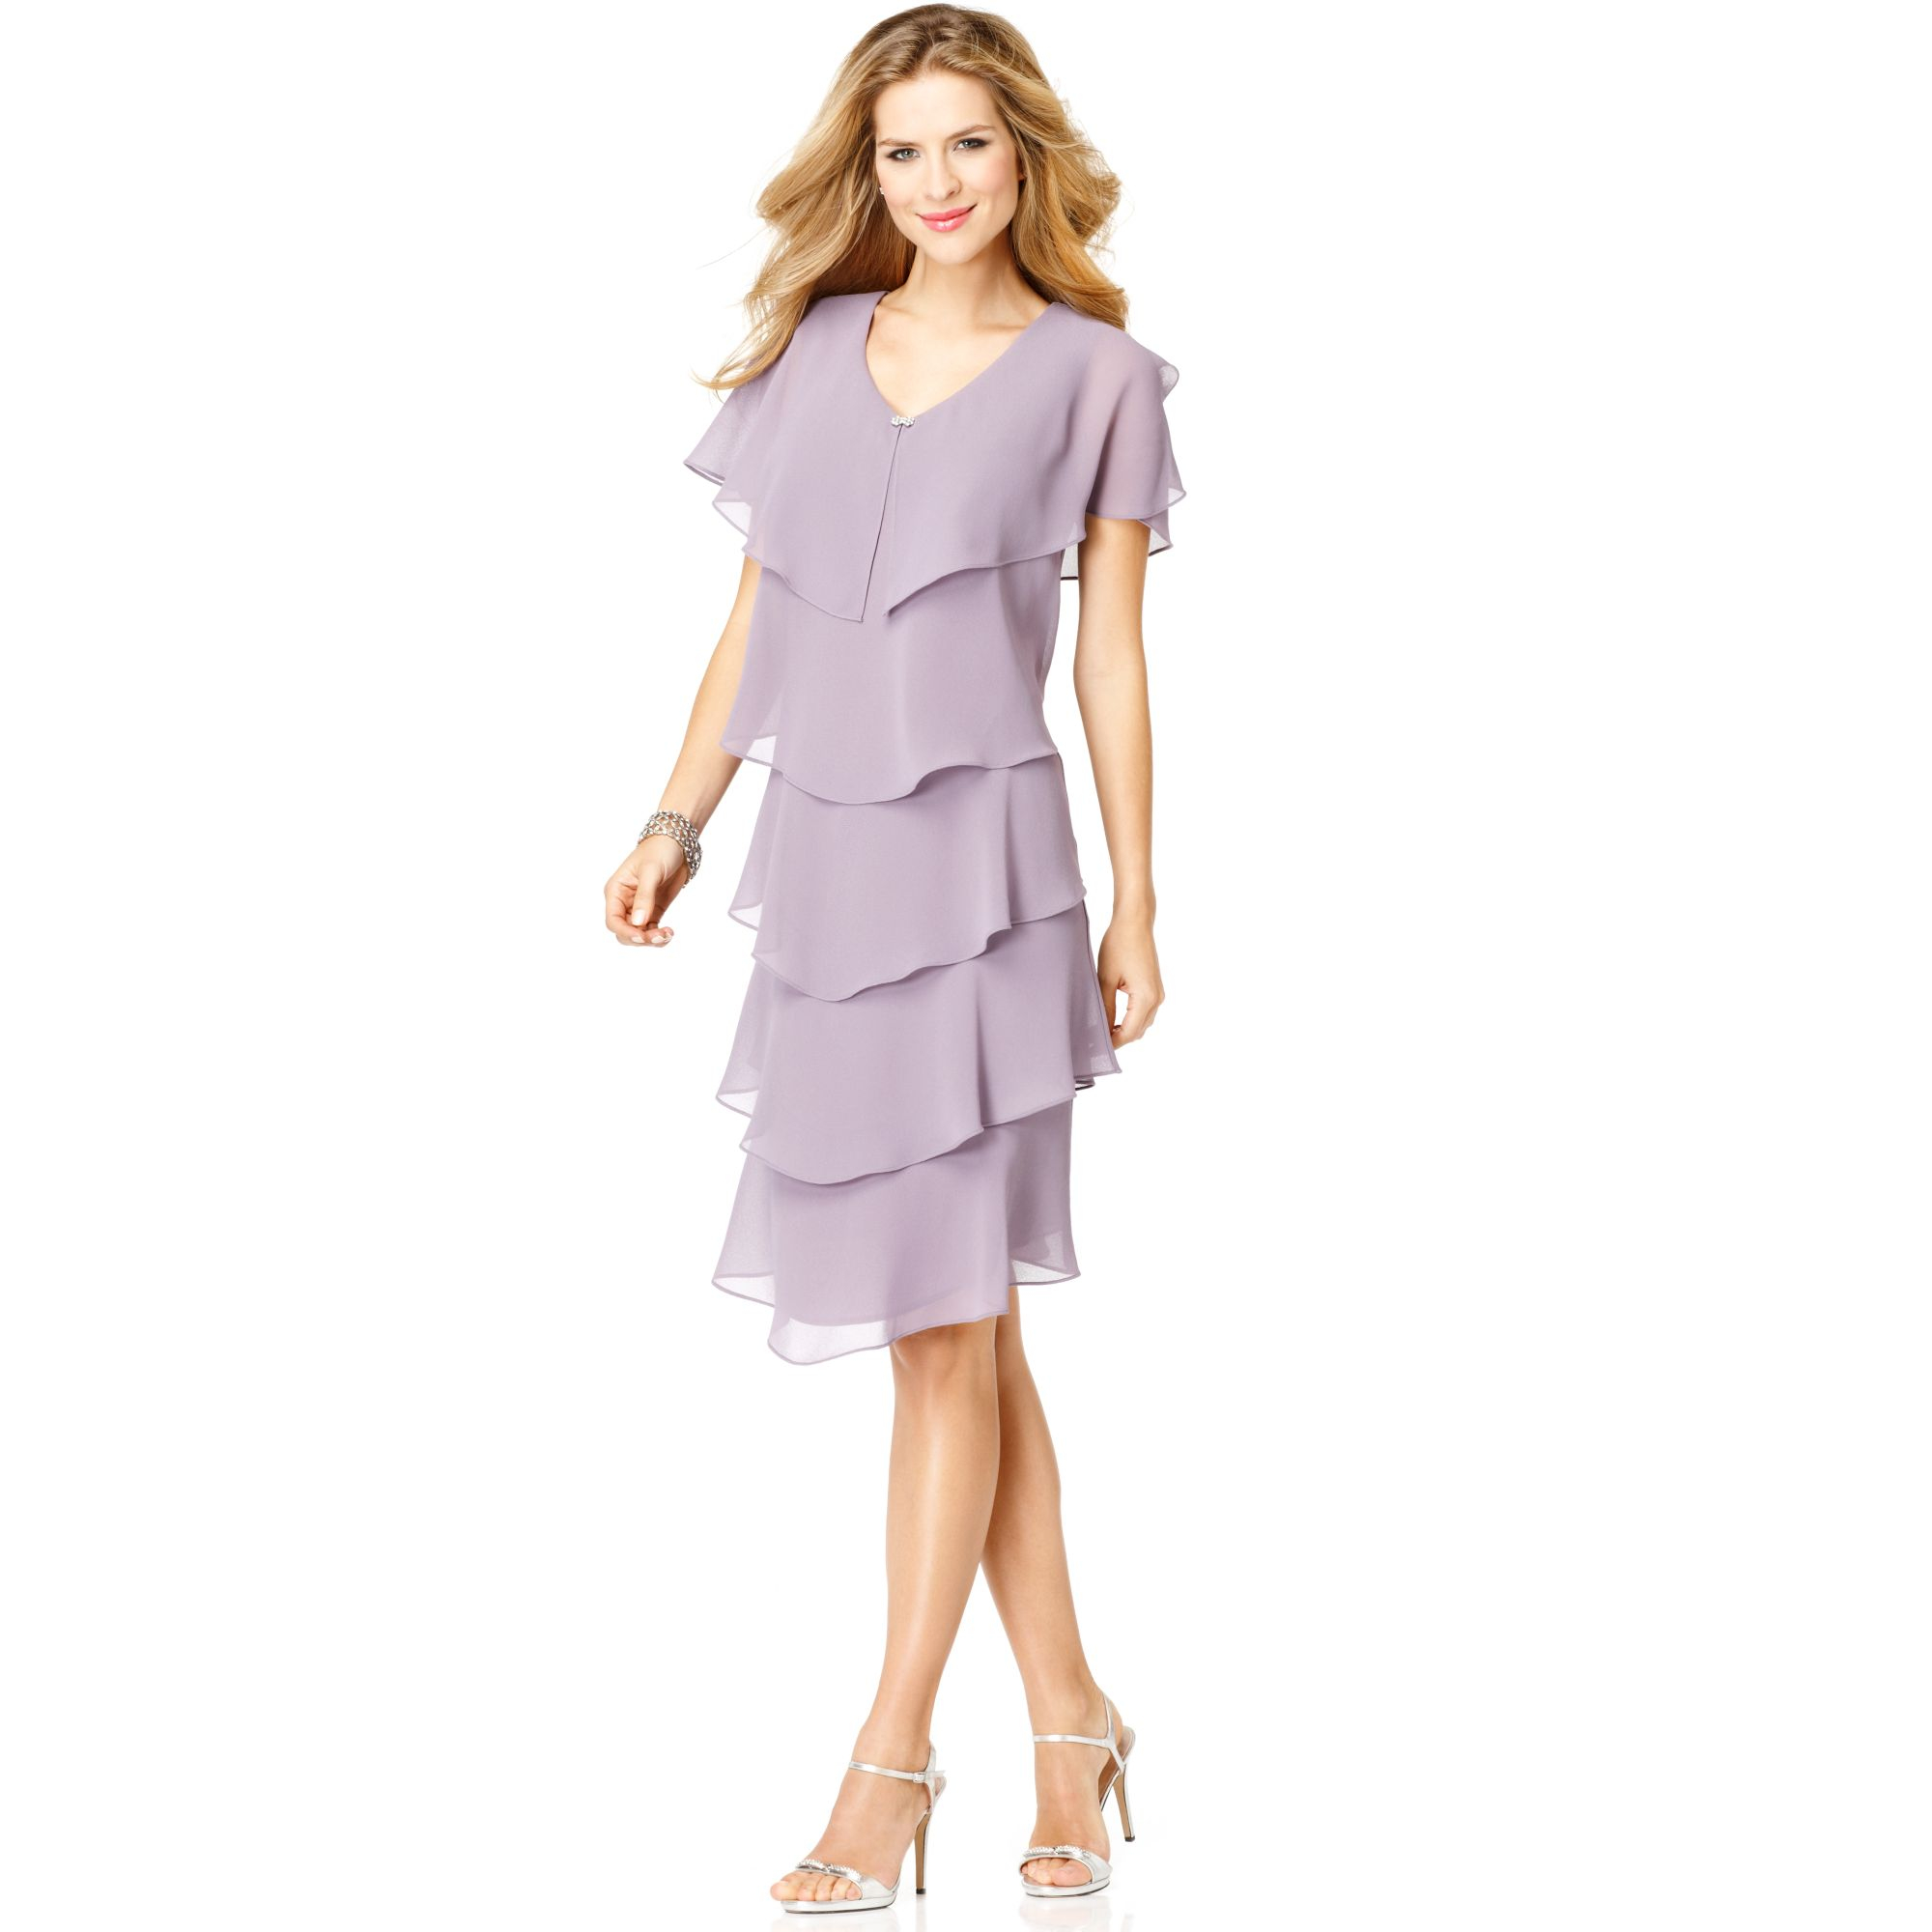 Patra Short Sleeve Tiered Dress in Purple | Lyst